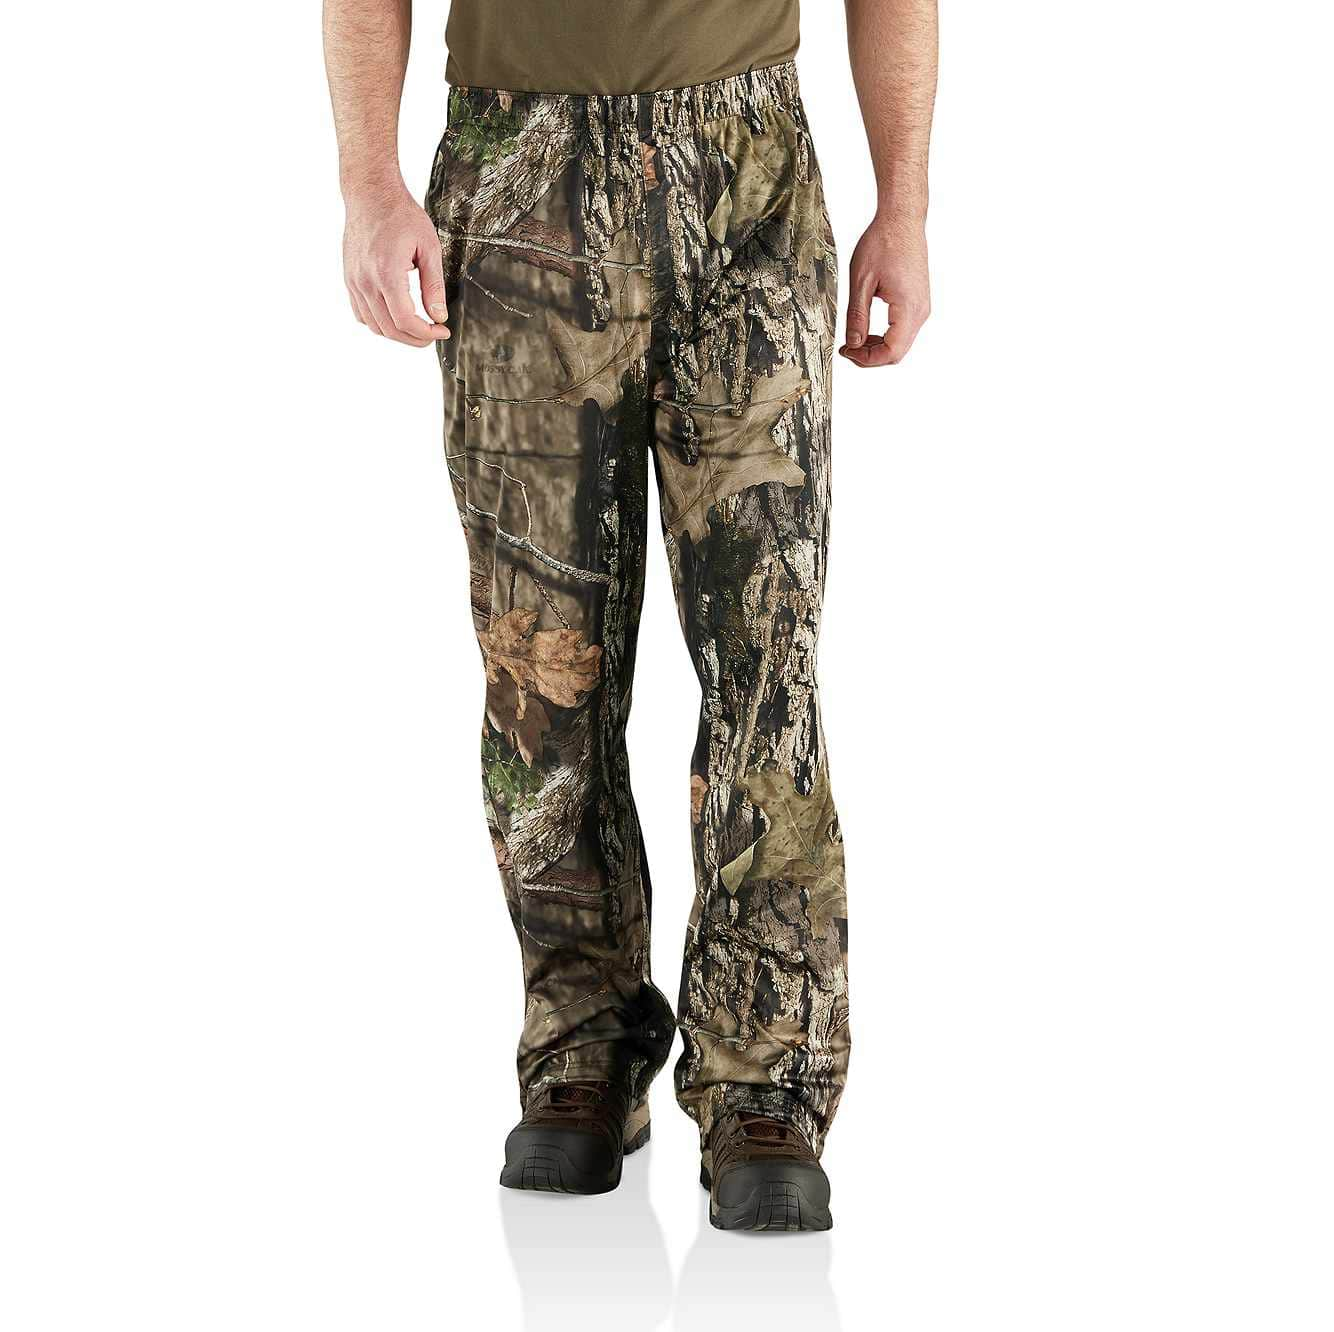 Picture of Stormy Woods Camo Pant in Mossy Oak Break-Up Country